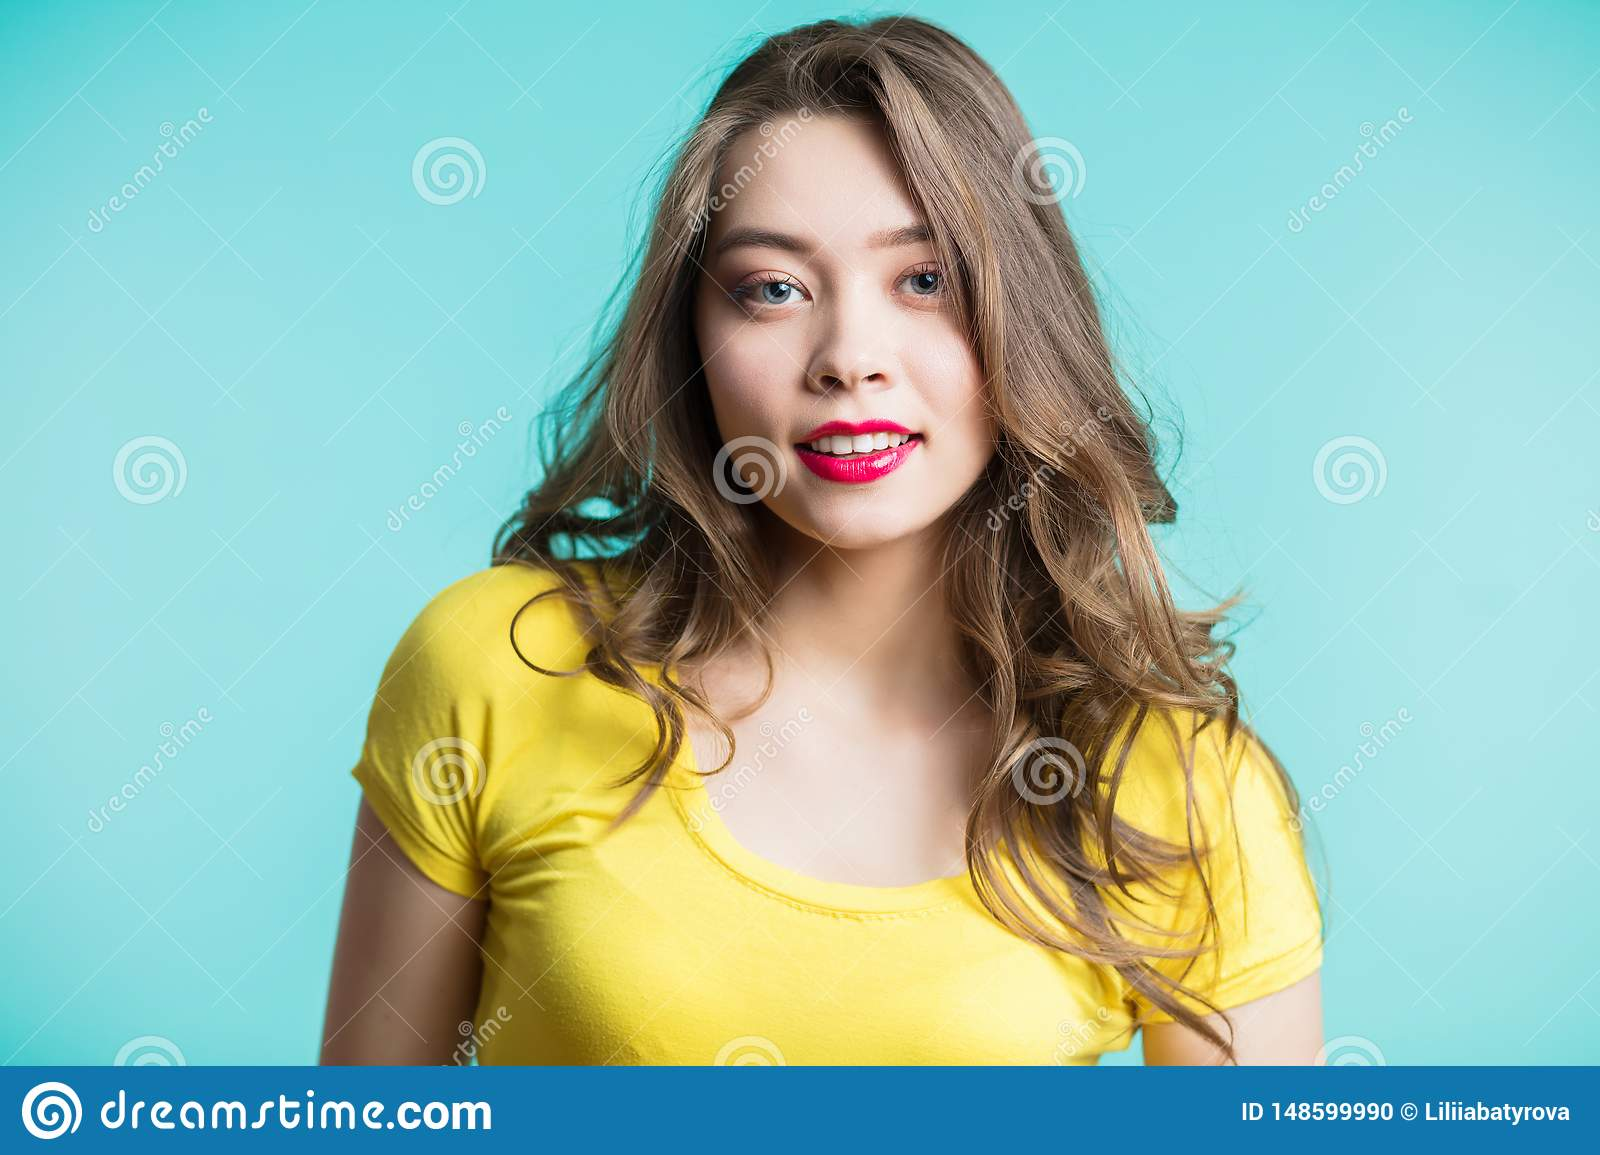 Beauty Woman face Portrait. Beautiful Spa model Girl with Perfect Fresh Clean Skin. Blonde female looking at camera and smiling.